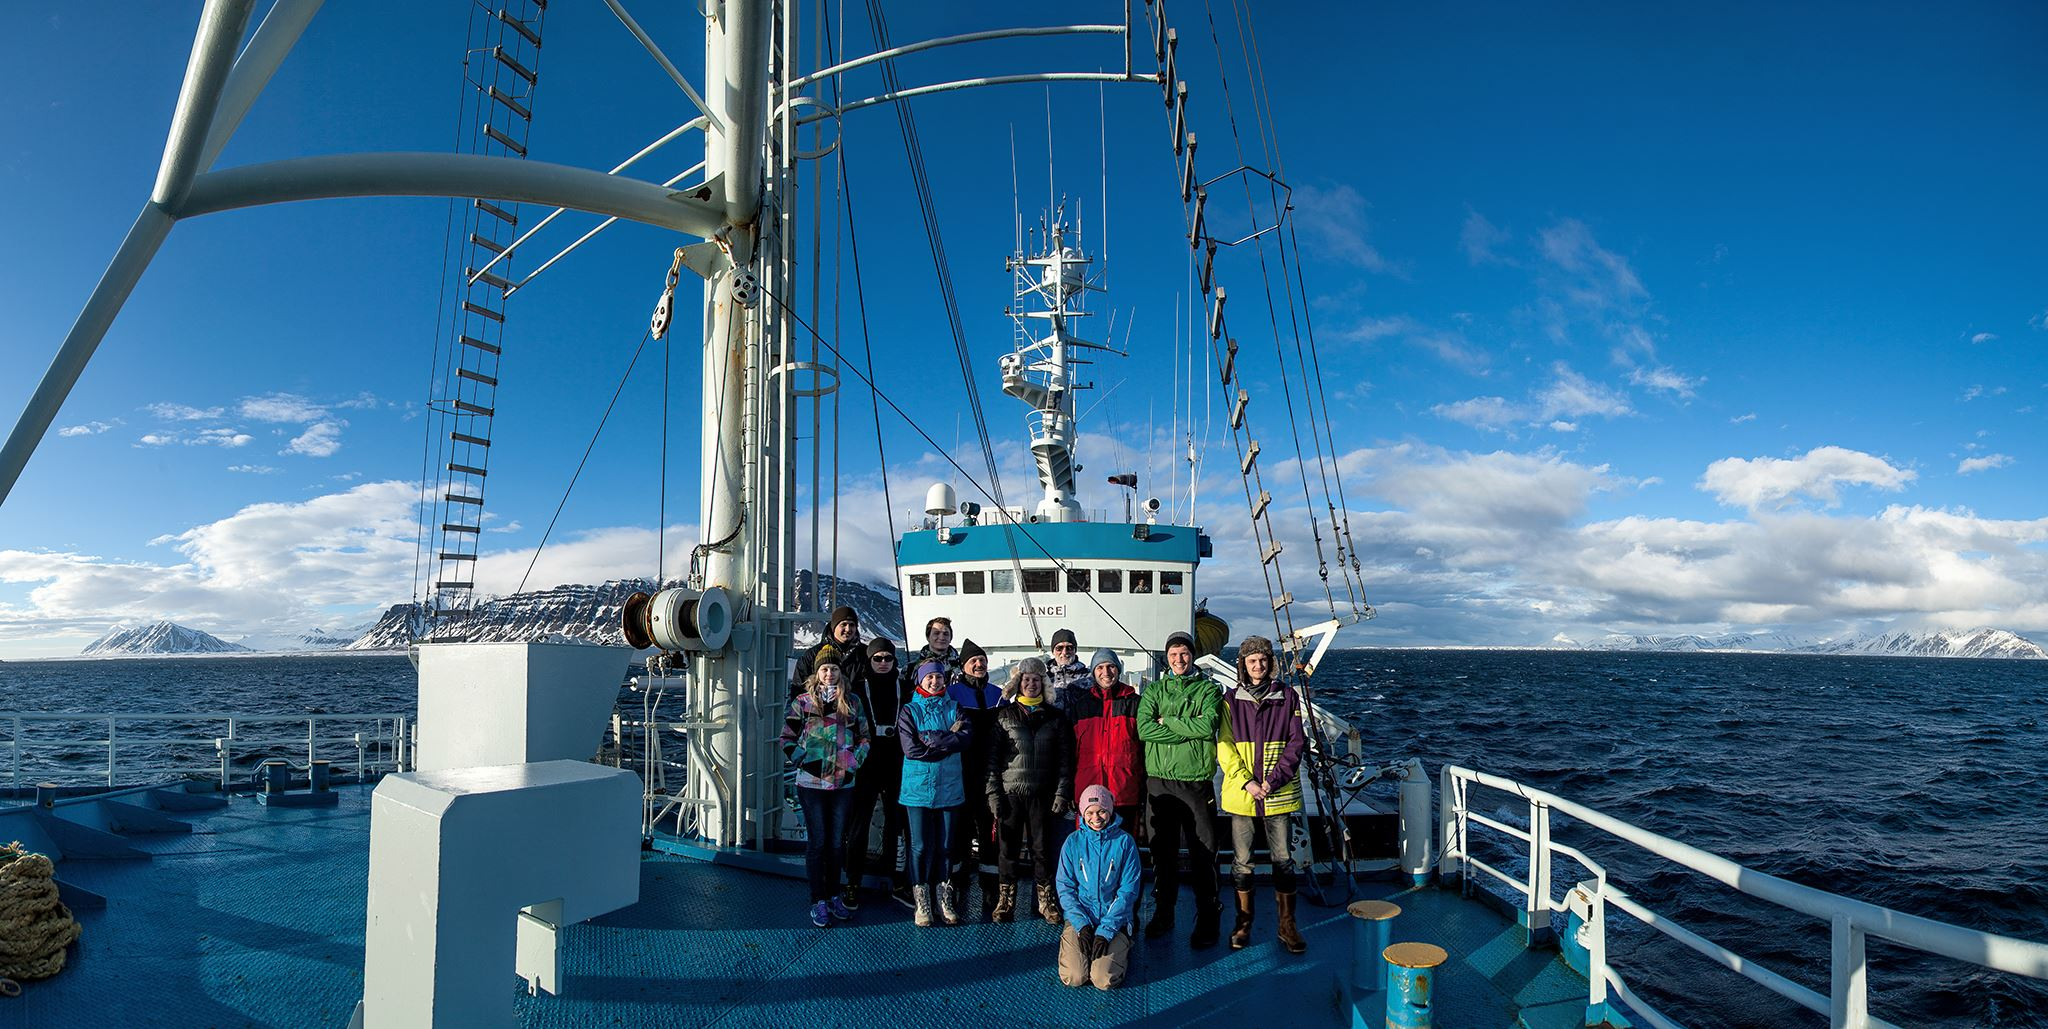 UNIS students on board R/V Lance, 2016. Photo: Evgenii Salganik